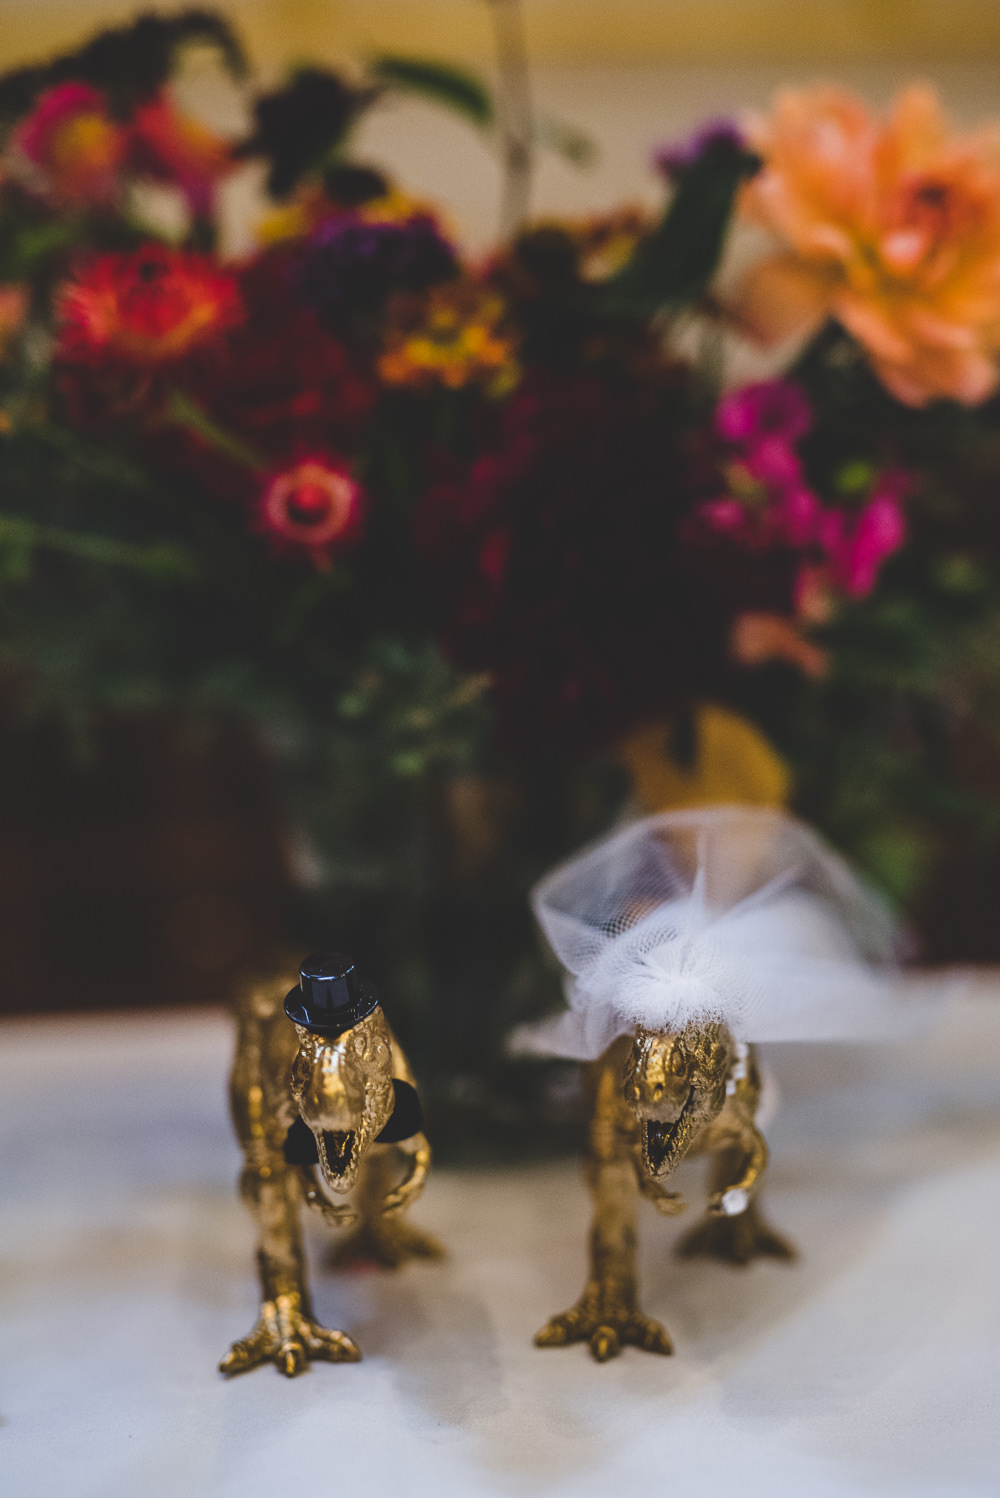 Bride Groom Dinosaurs Gold Figurines Victoria Gallery Museum Wedding Emma Hillier Photography